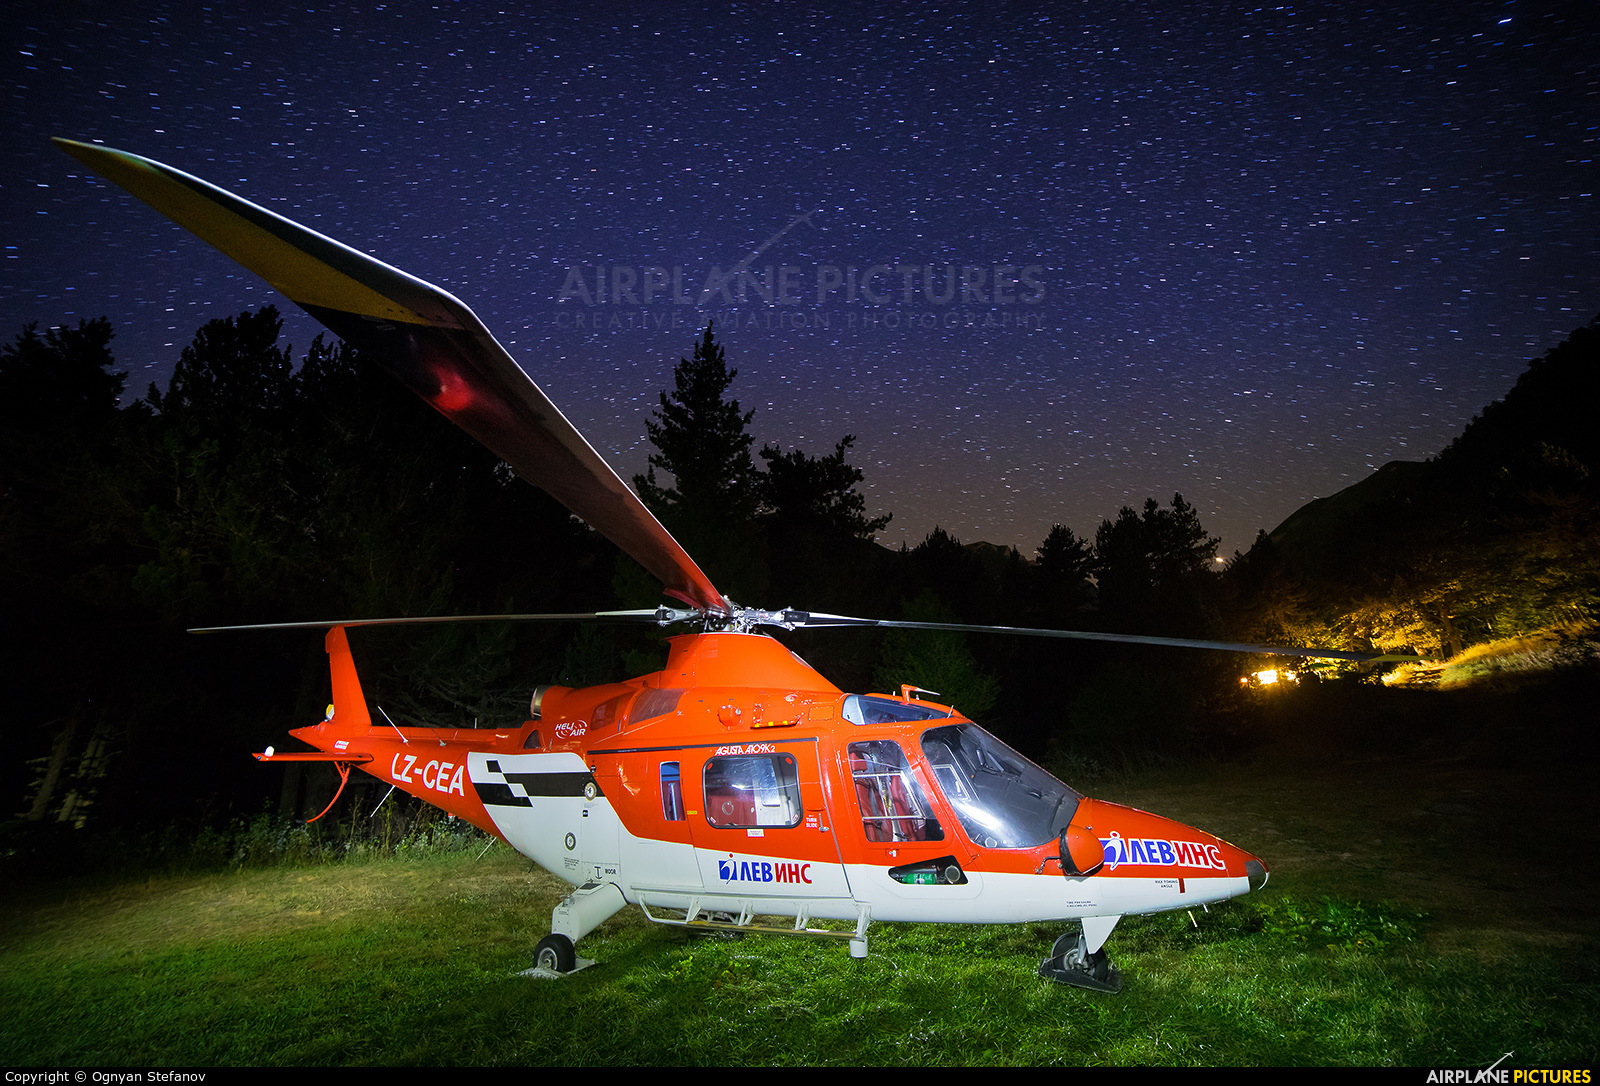 Heli Air Services LZ-CEA aircraft at Off Airport - Bulgaria